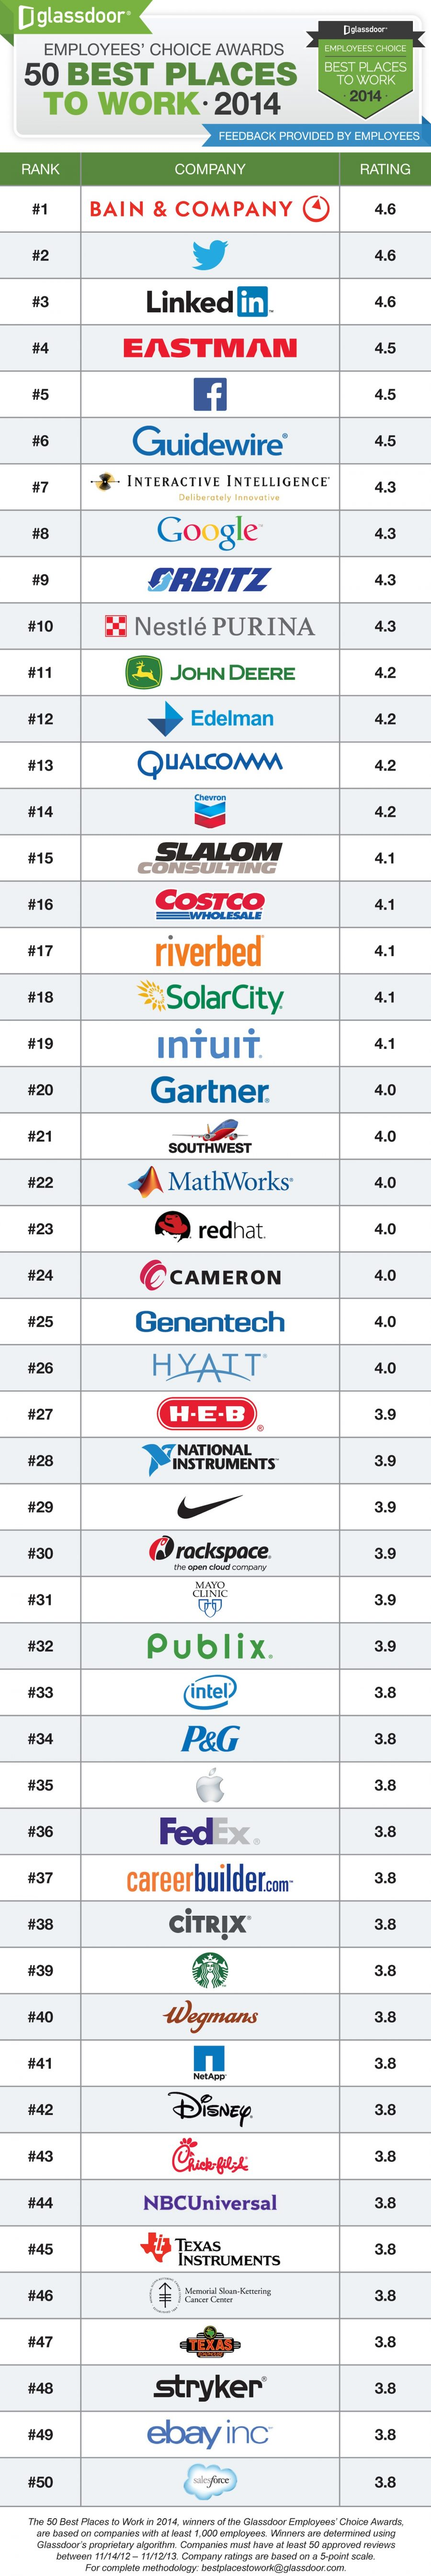 Glassdoor50BestPlacestoWork2014